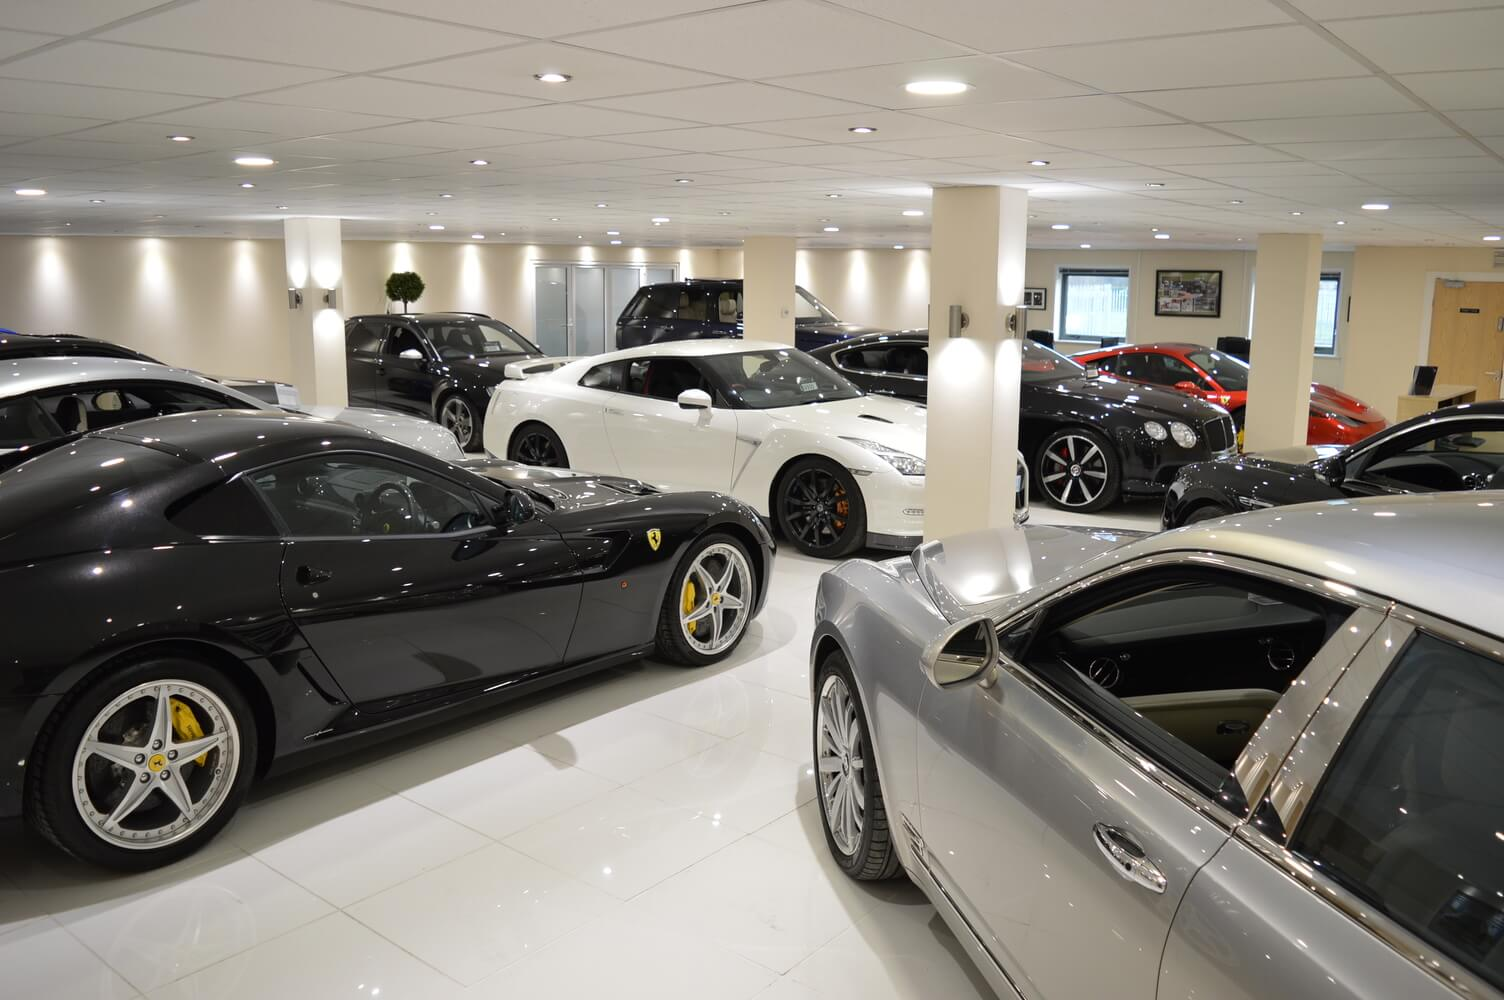 Our showroom alterations are now complete!